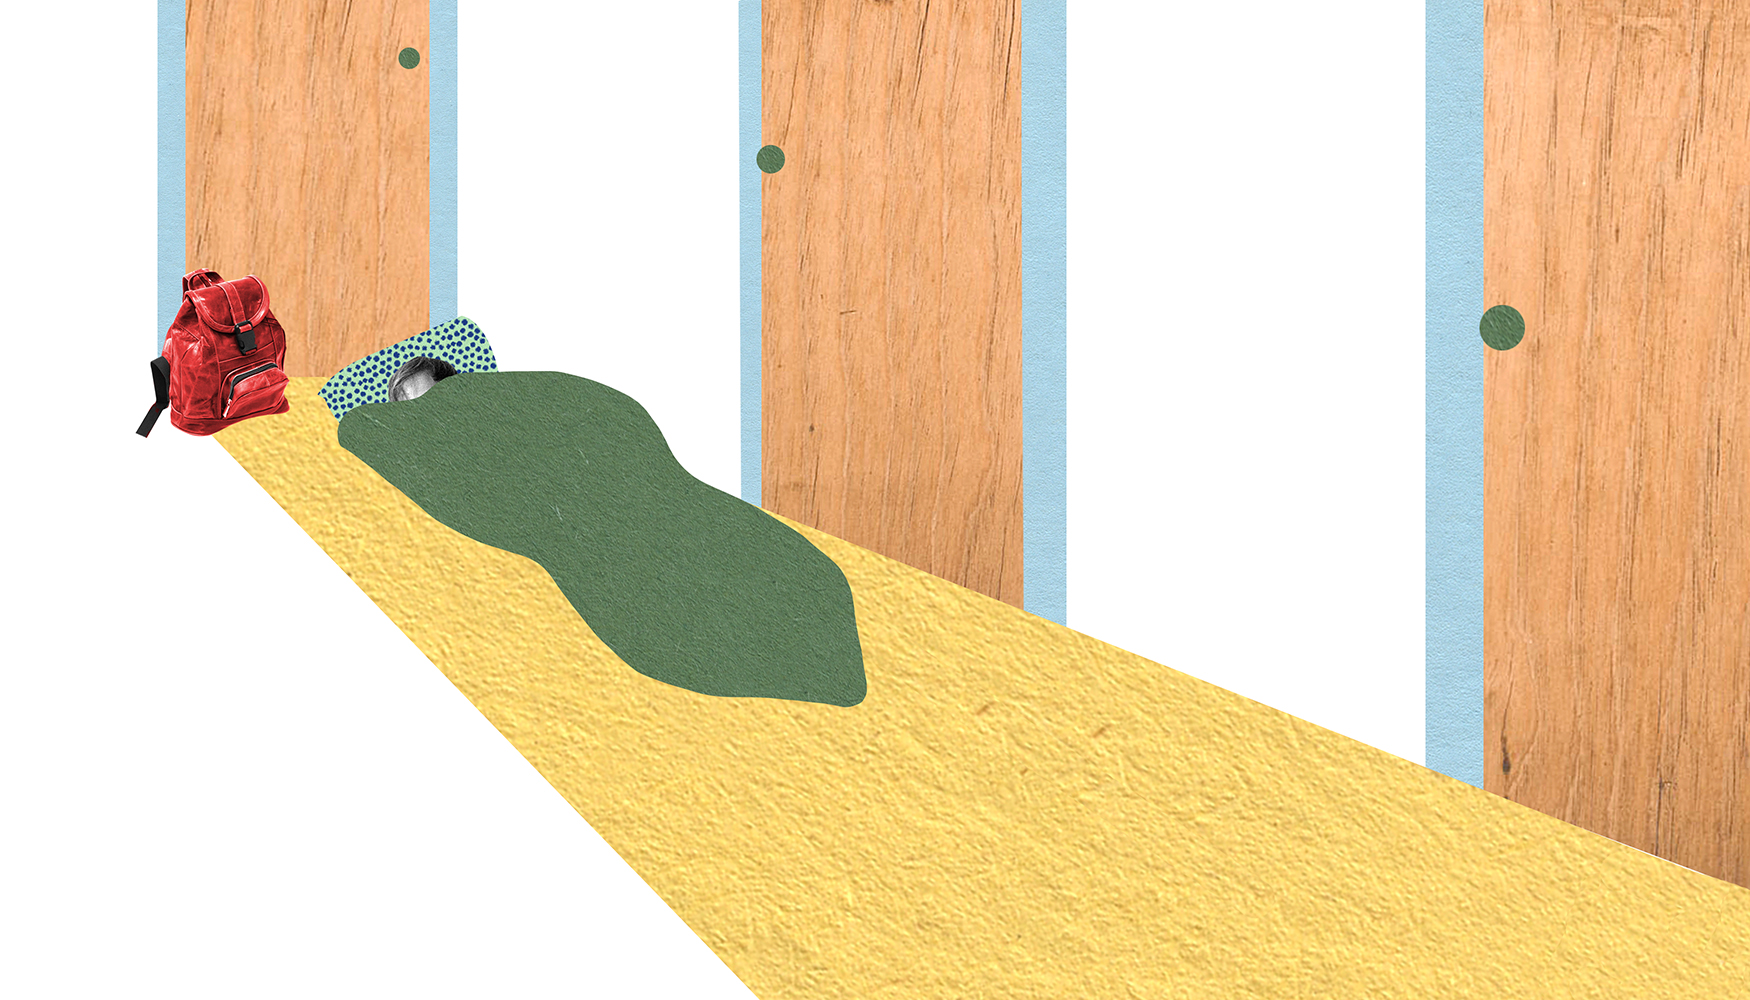 A woman sleeps in a green sleeping bag in a long narrow hallway in front of a closed door. She has a red backpack next to her. Illustration.